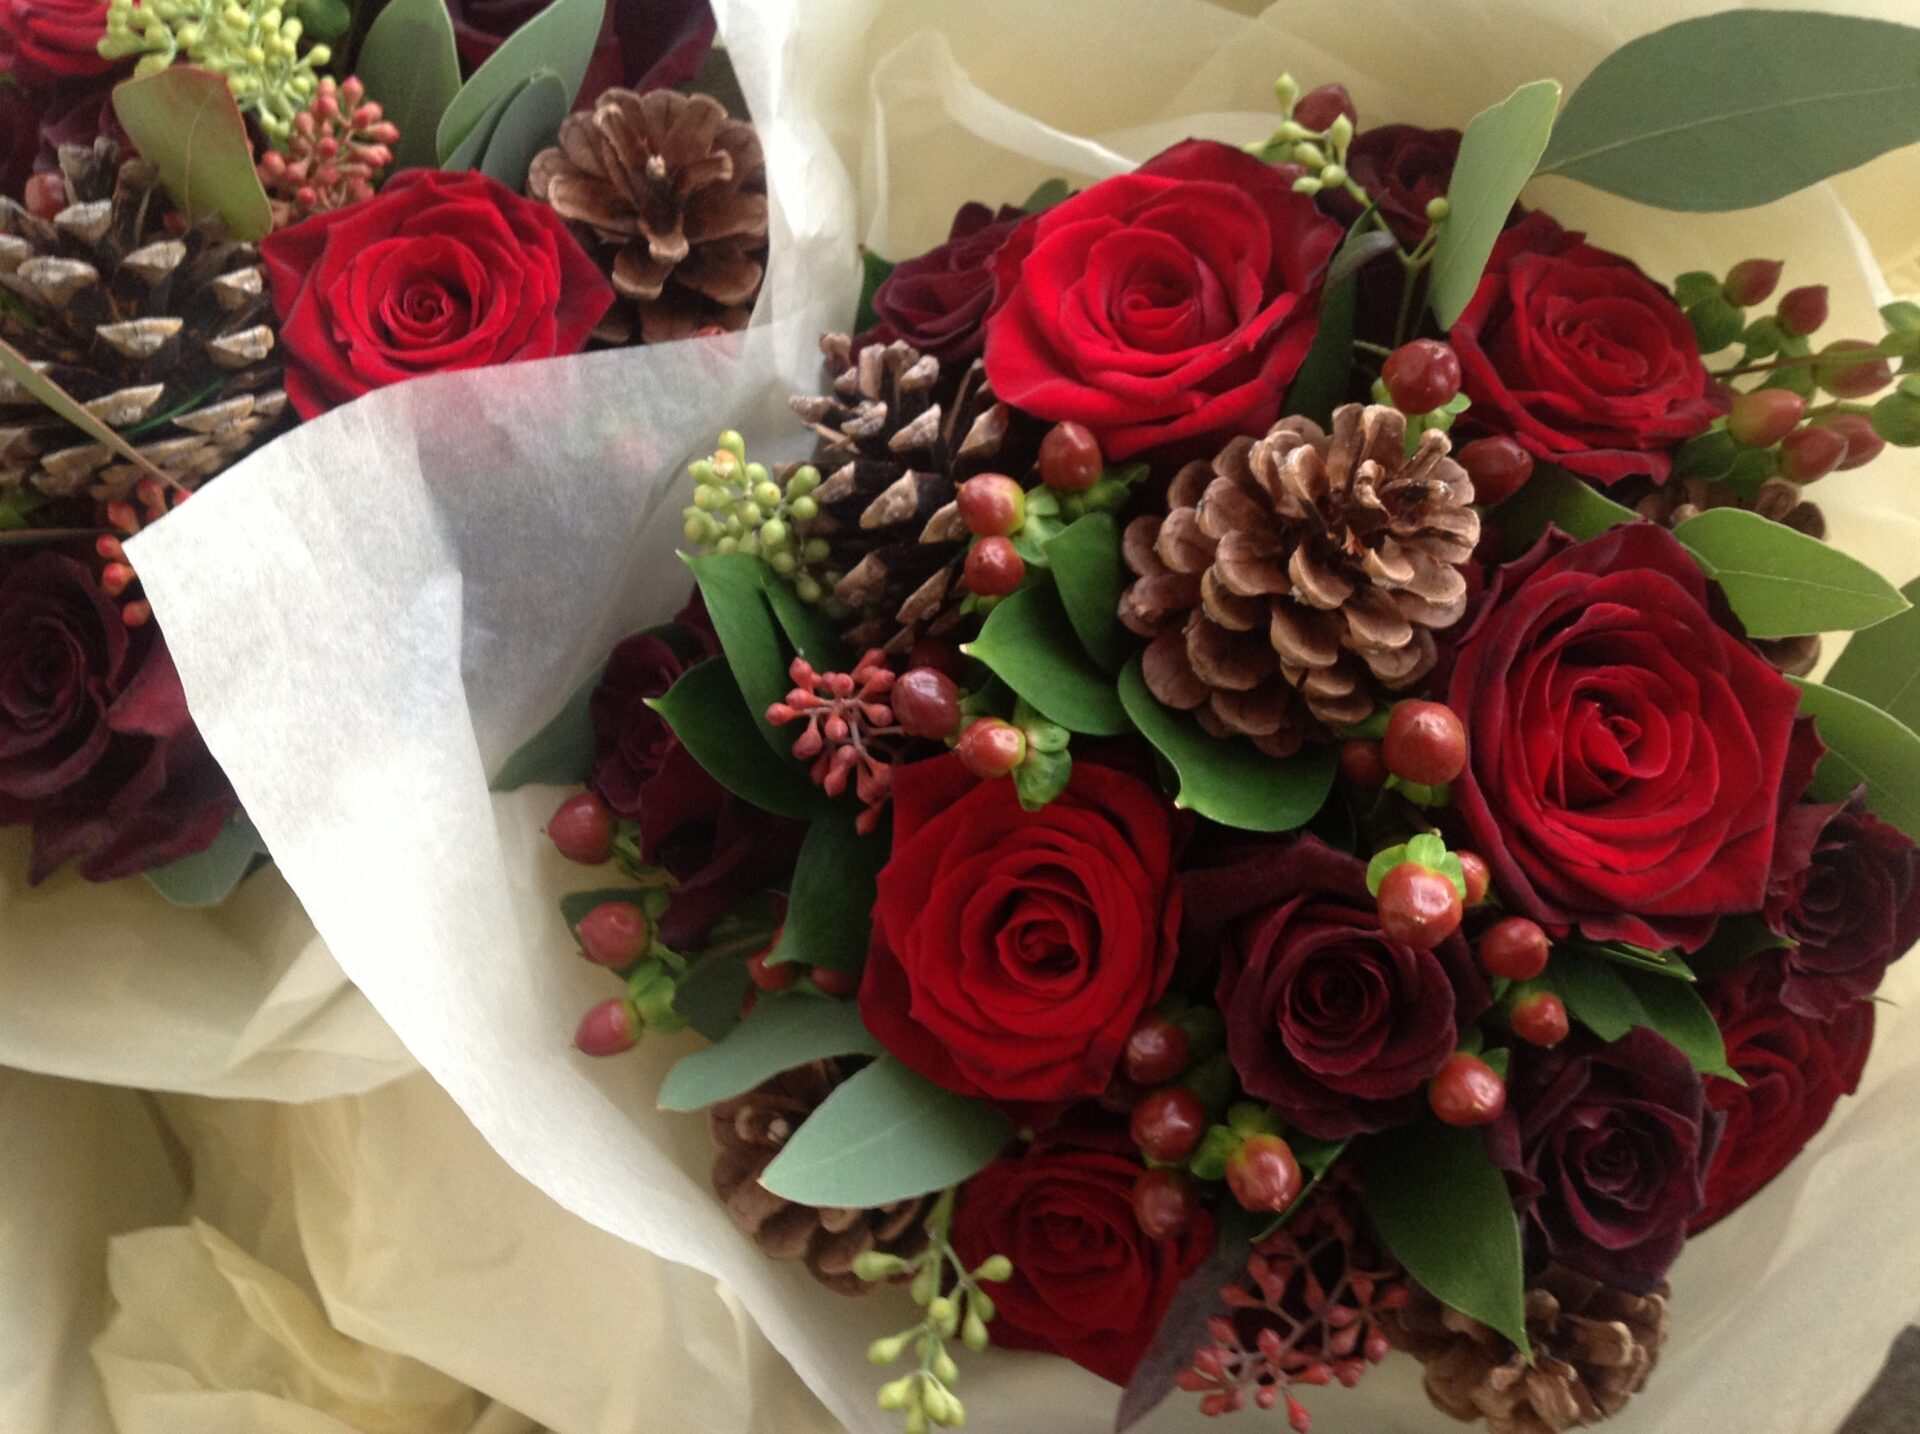 Winter weddings 5 amazing flower ideas warwick house - Red garden rose bouquet ...